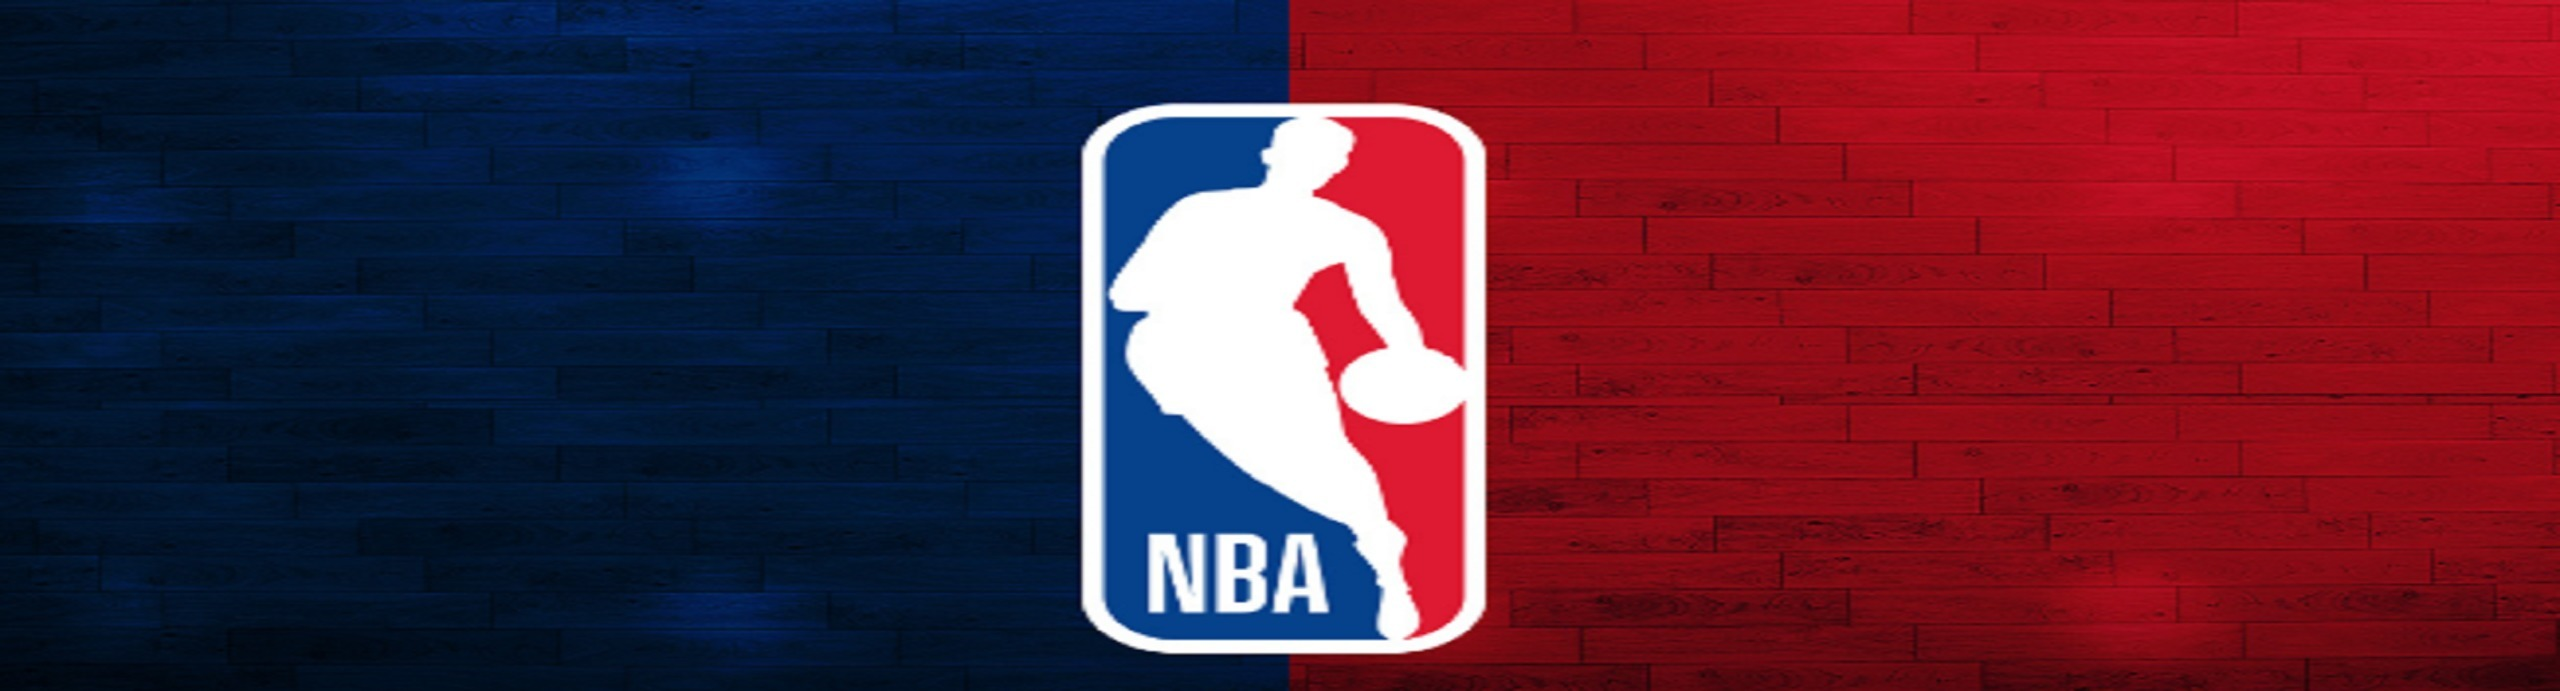 NBA Streams (@nbastreams) Cover Image